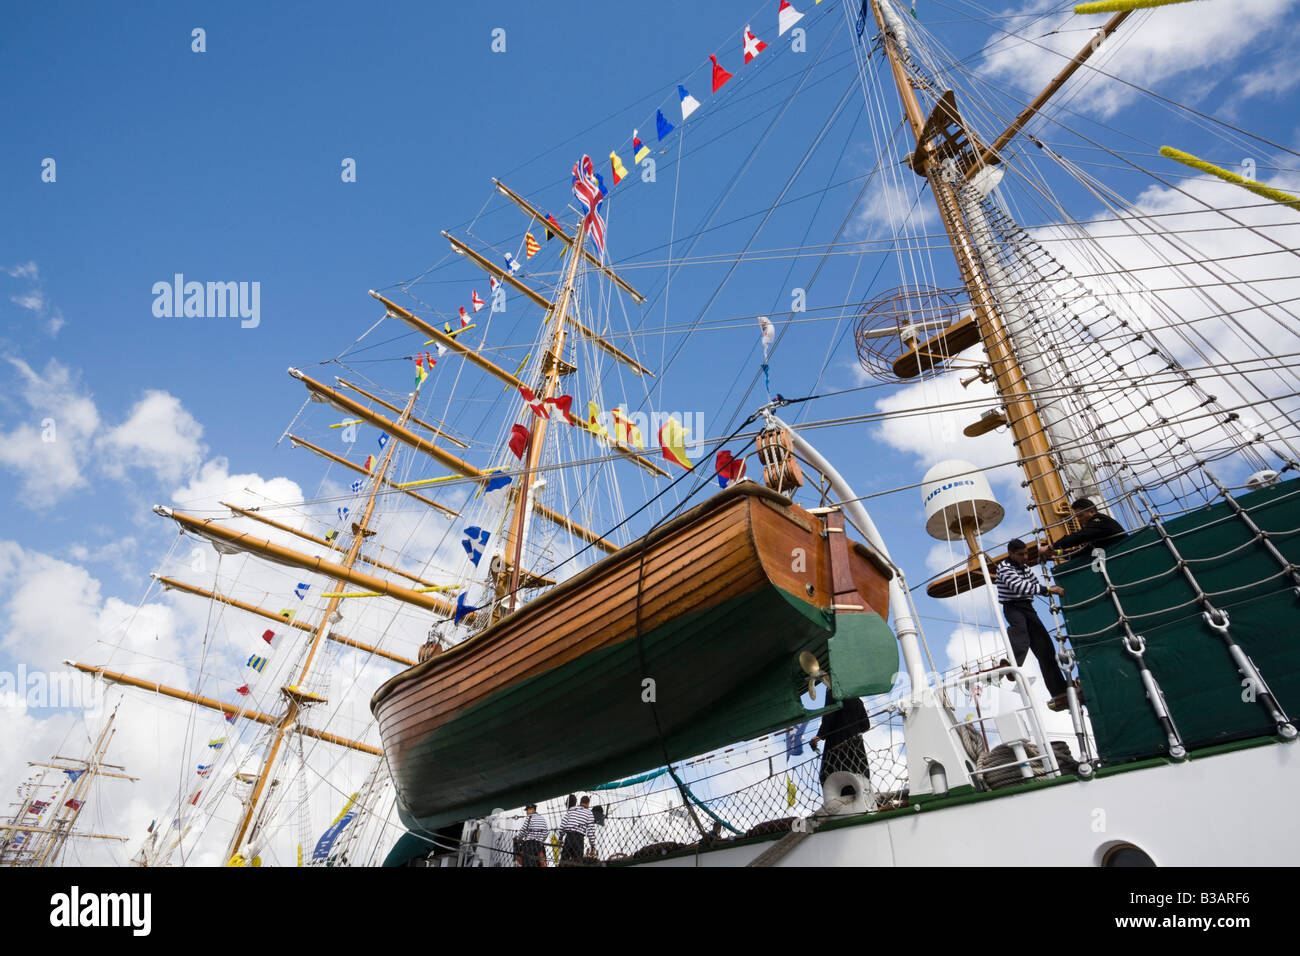 Wooden lifeboat on Cuauhtemoc three masted Barque from Mexico in Tall Ships race berthed in dock Britain UK - Stock Image